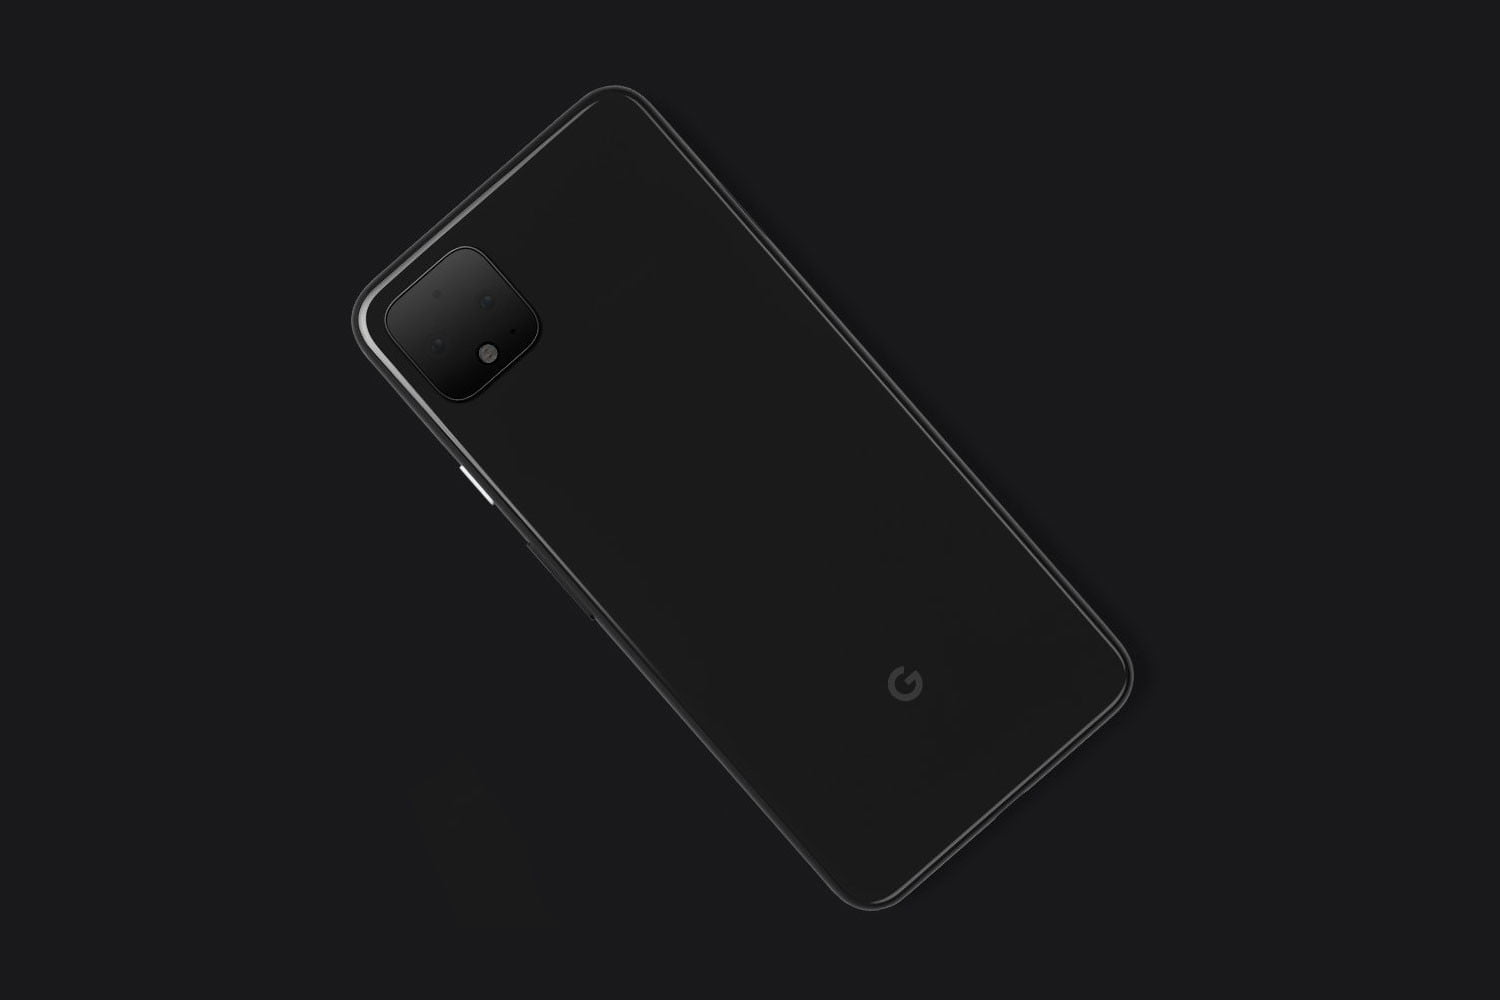 Leaked Google Pixel 4 promo video shows off a new astrophotography camera mode